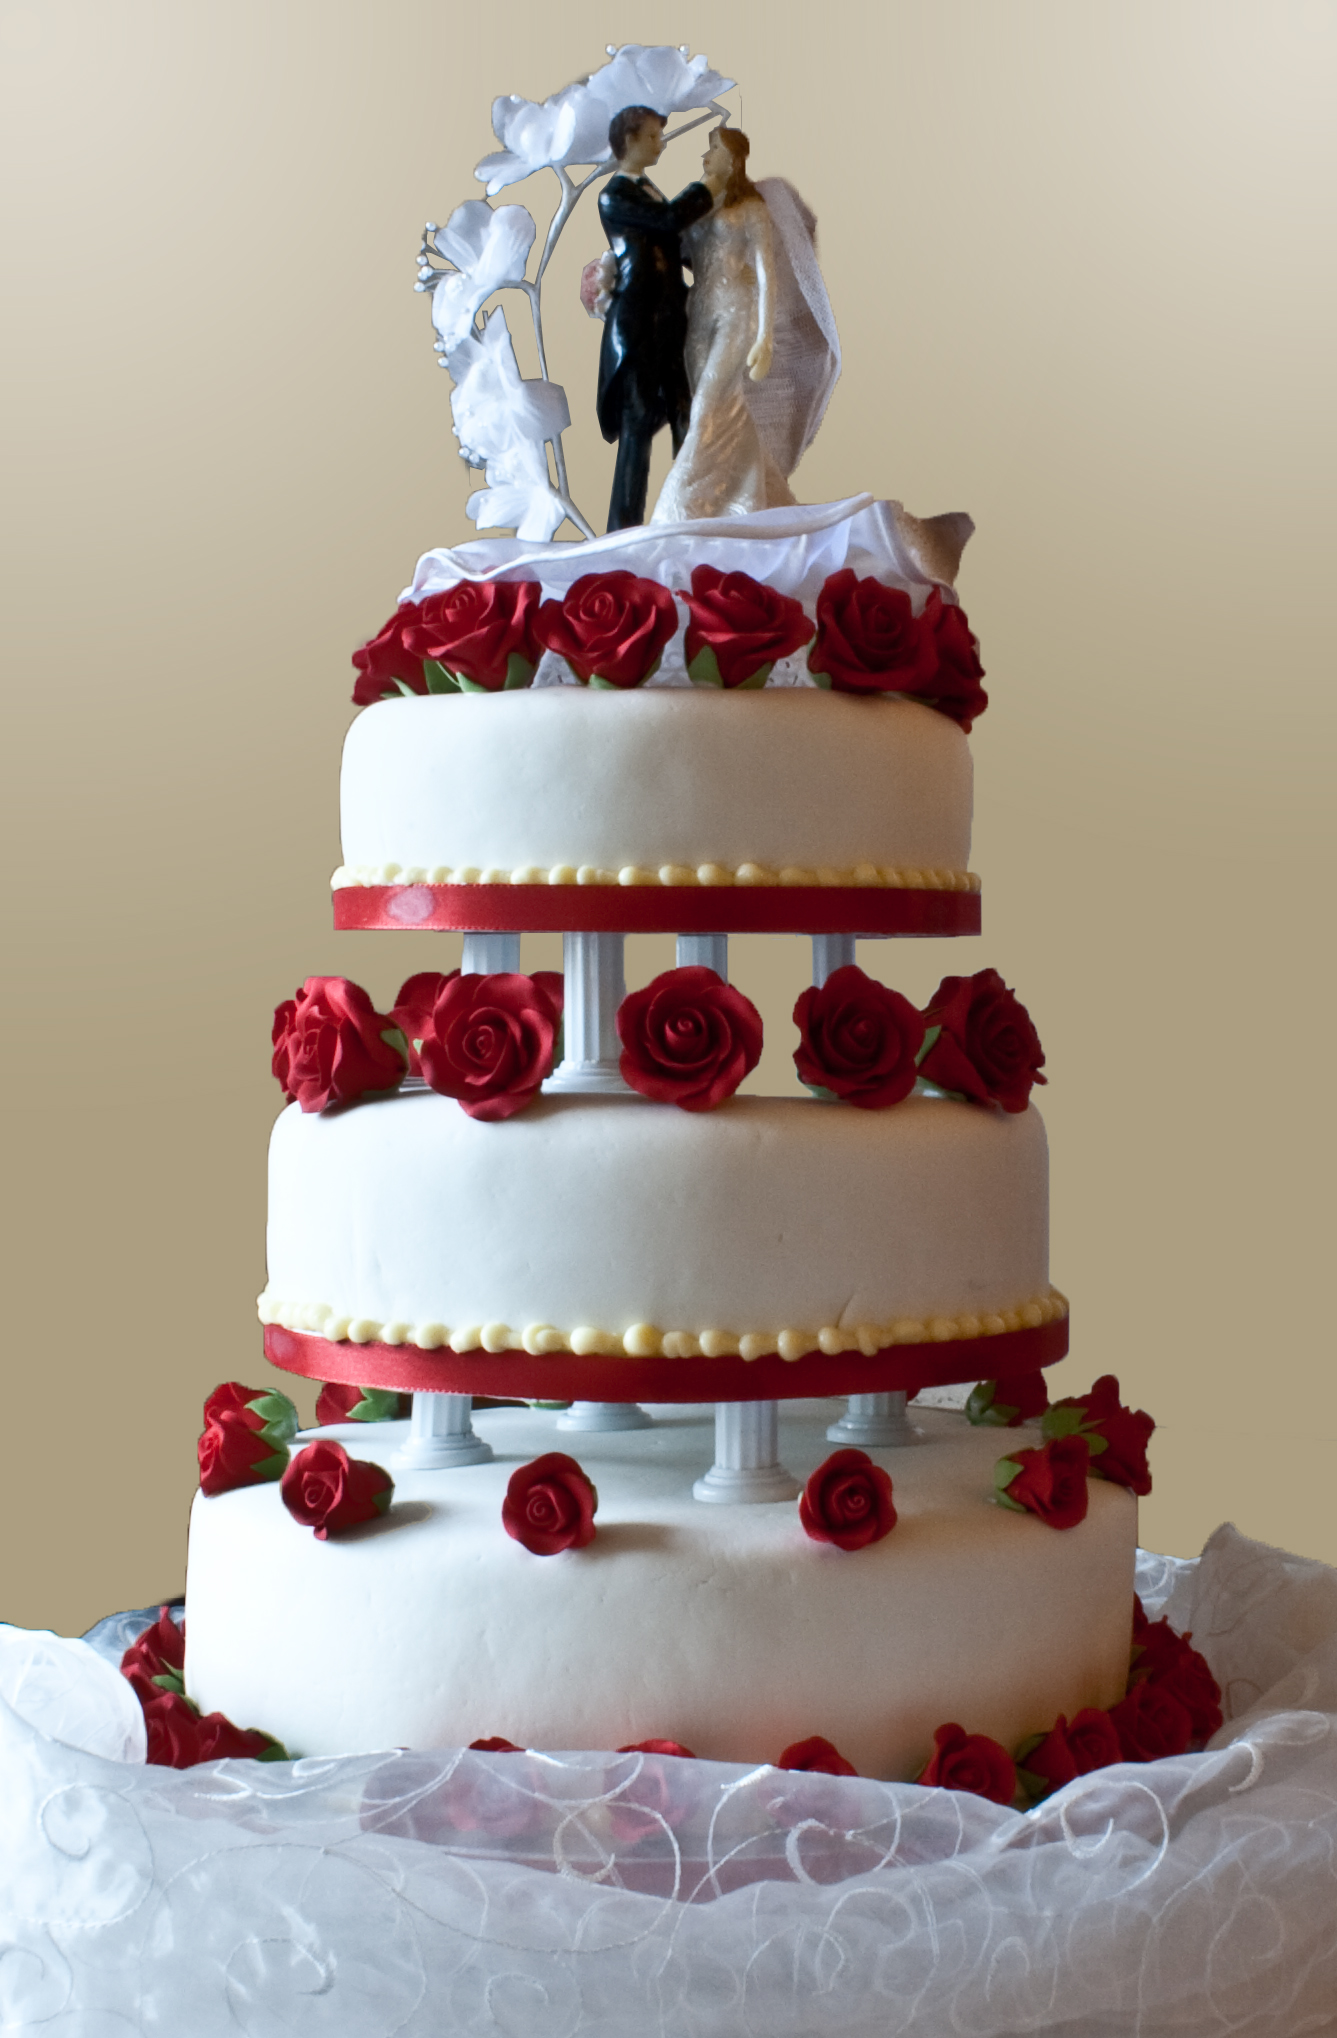 Wedding cake - Wikipedia